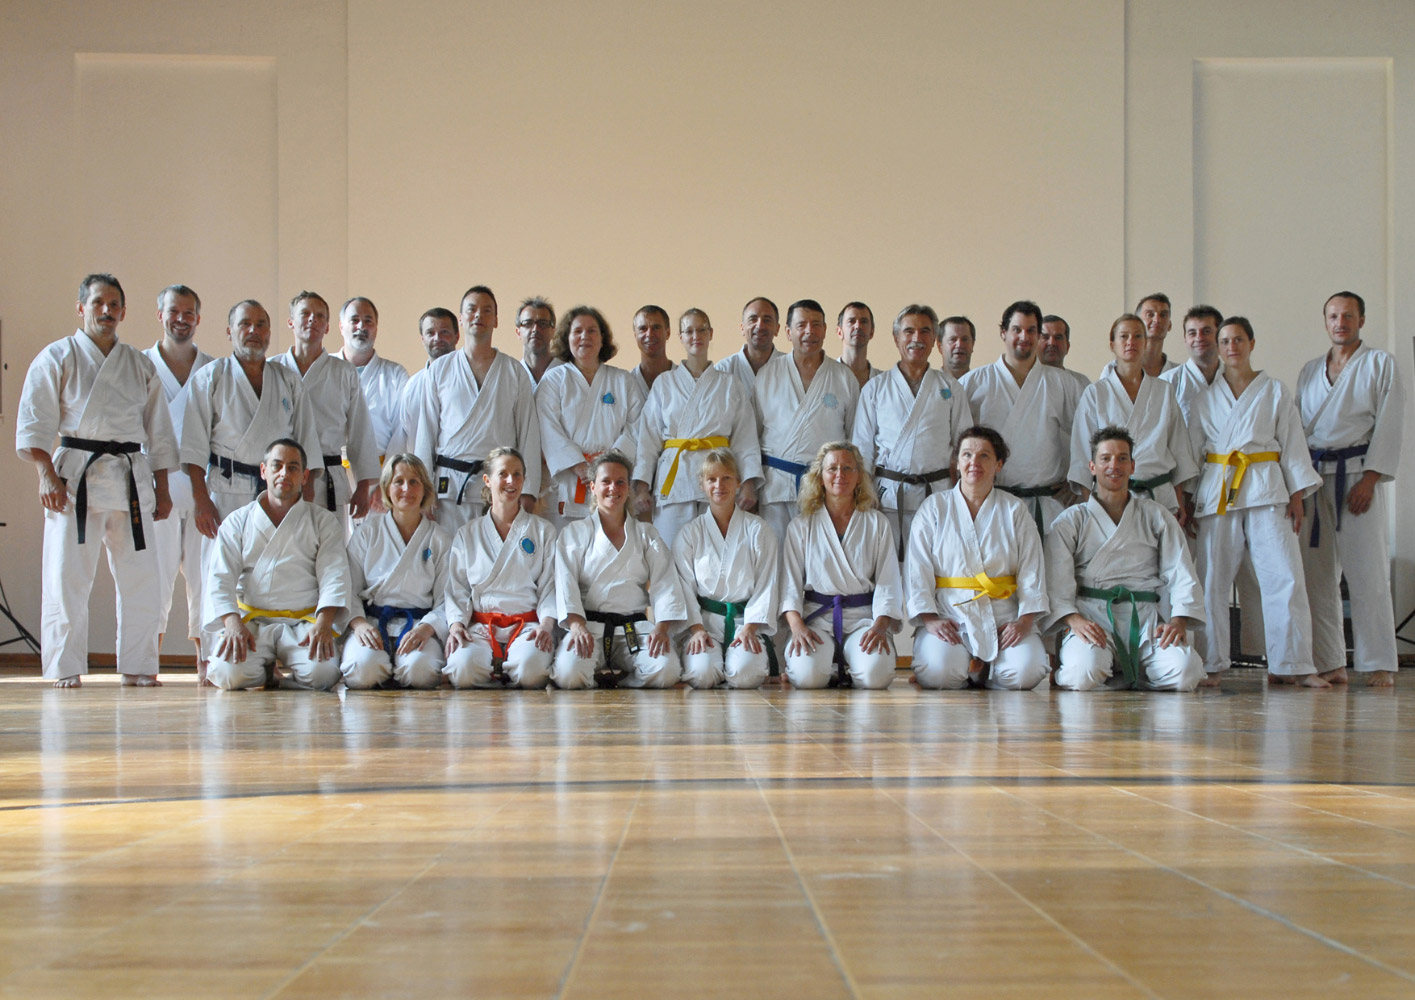 "<font face=""'nexa_boldregular',Arial,Helvetica,sans-serif"">KARATE DO</font> – Zen in Bewegung"